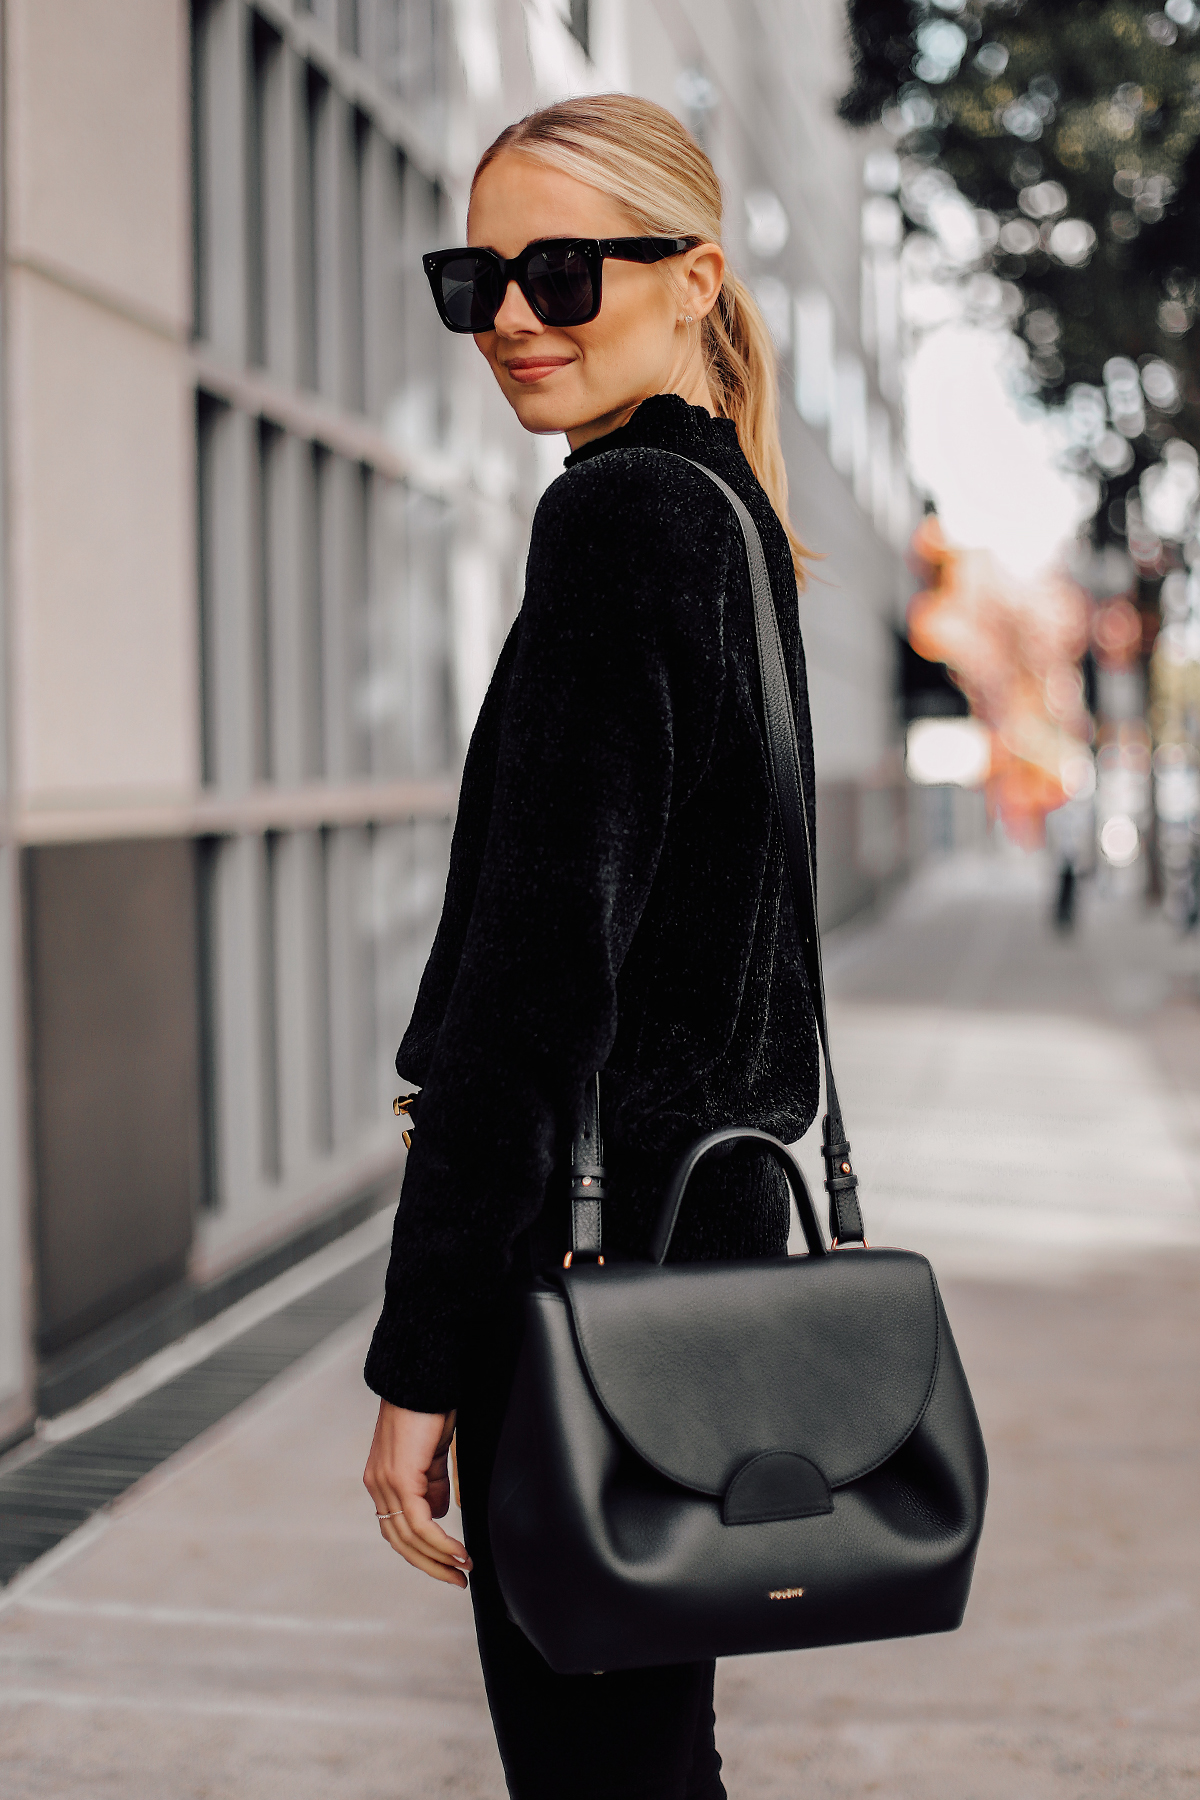 Blonde Woman Wearing Black Sweater Black Satchel Handbag Fashion Jackson San Diego Fashion Blogger Street Style